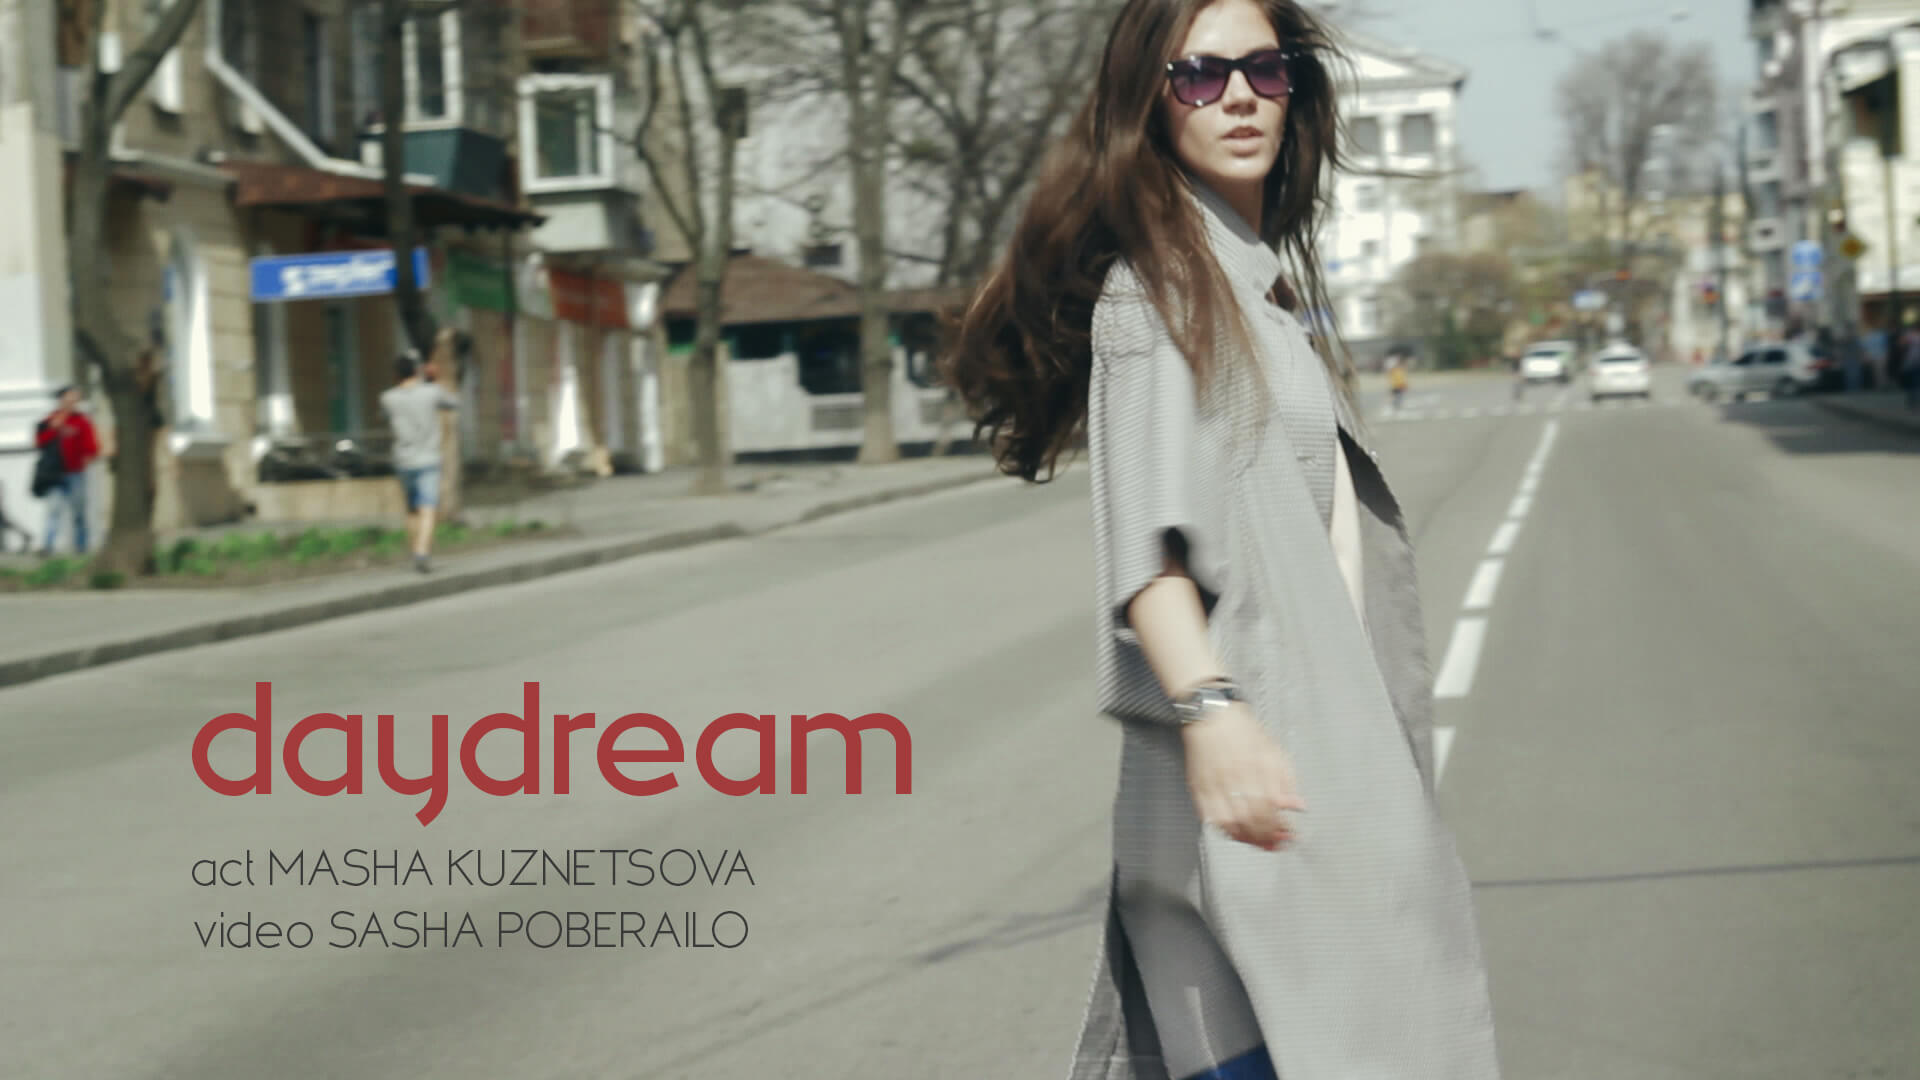 daydream fashion short film - film